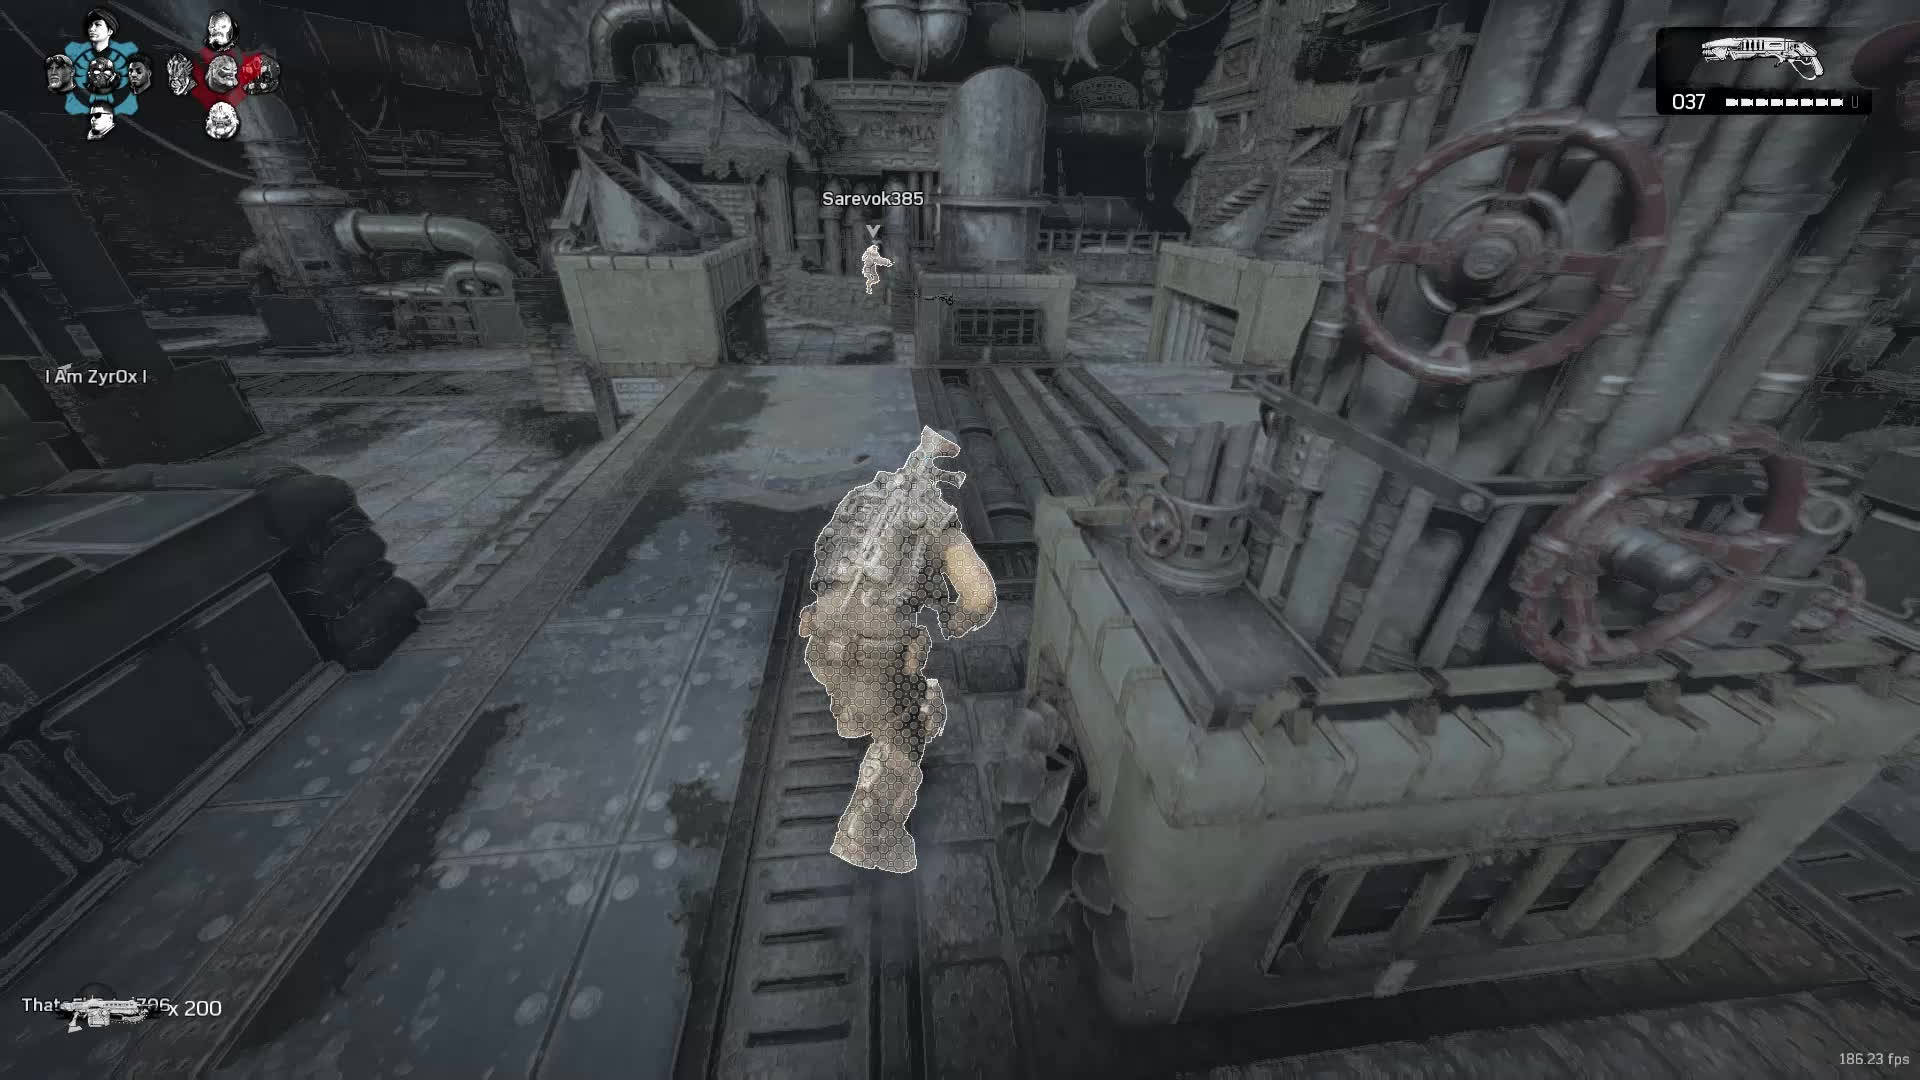 gearsofwar, Working as intended GIFs